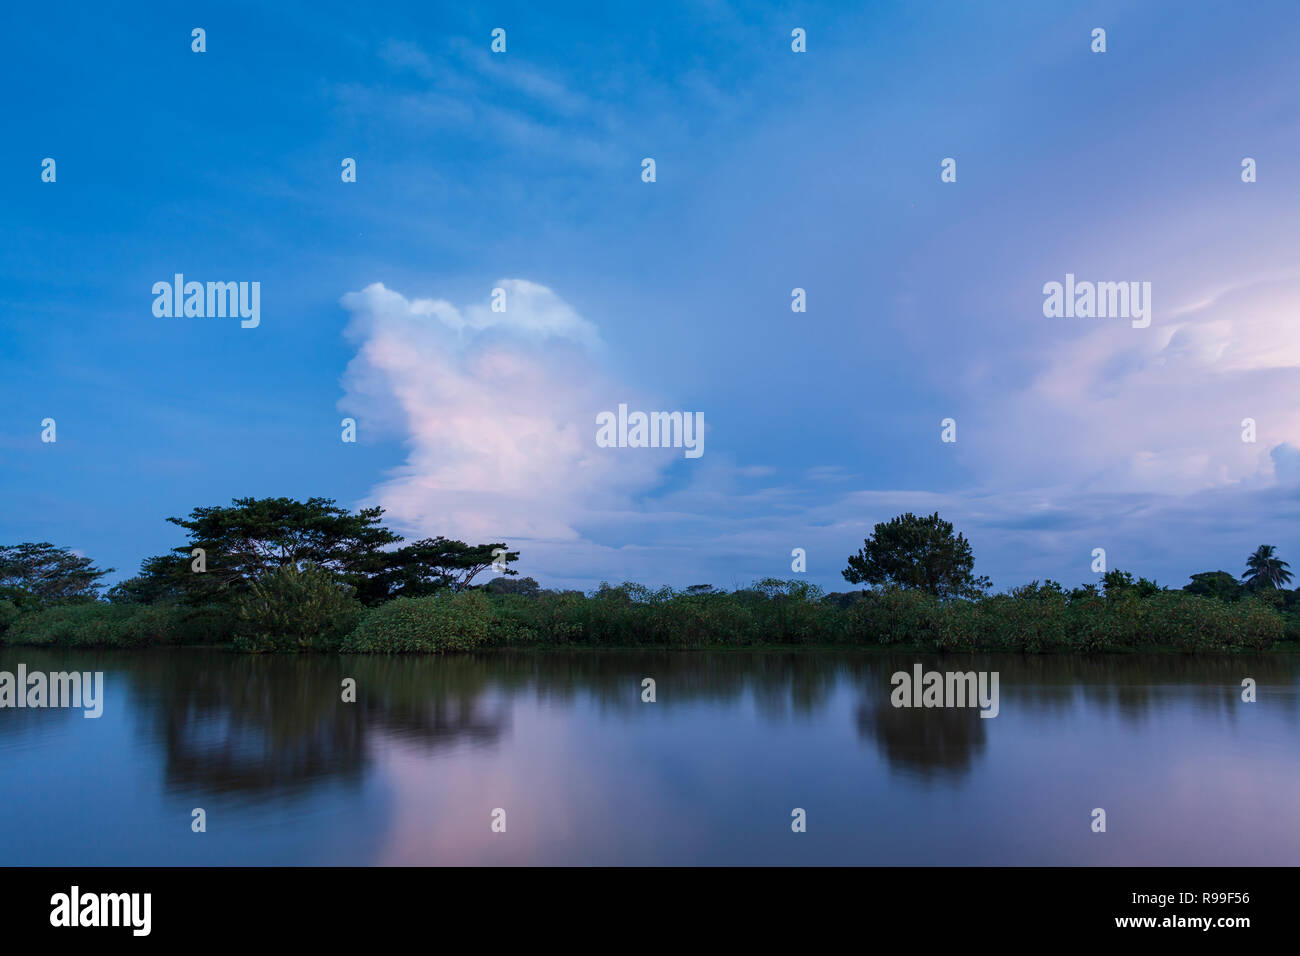 View of Caño Negro Wildlife Refuge with stormy clouds at dusk. Alajuela province. Costa Rica. Stock Photo